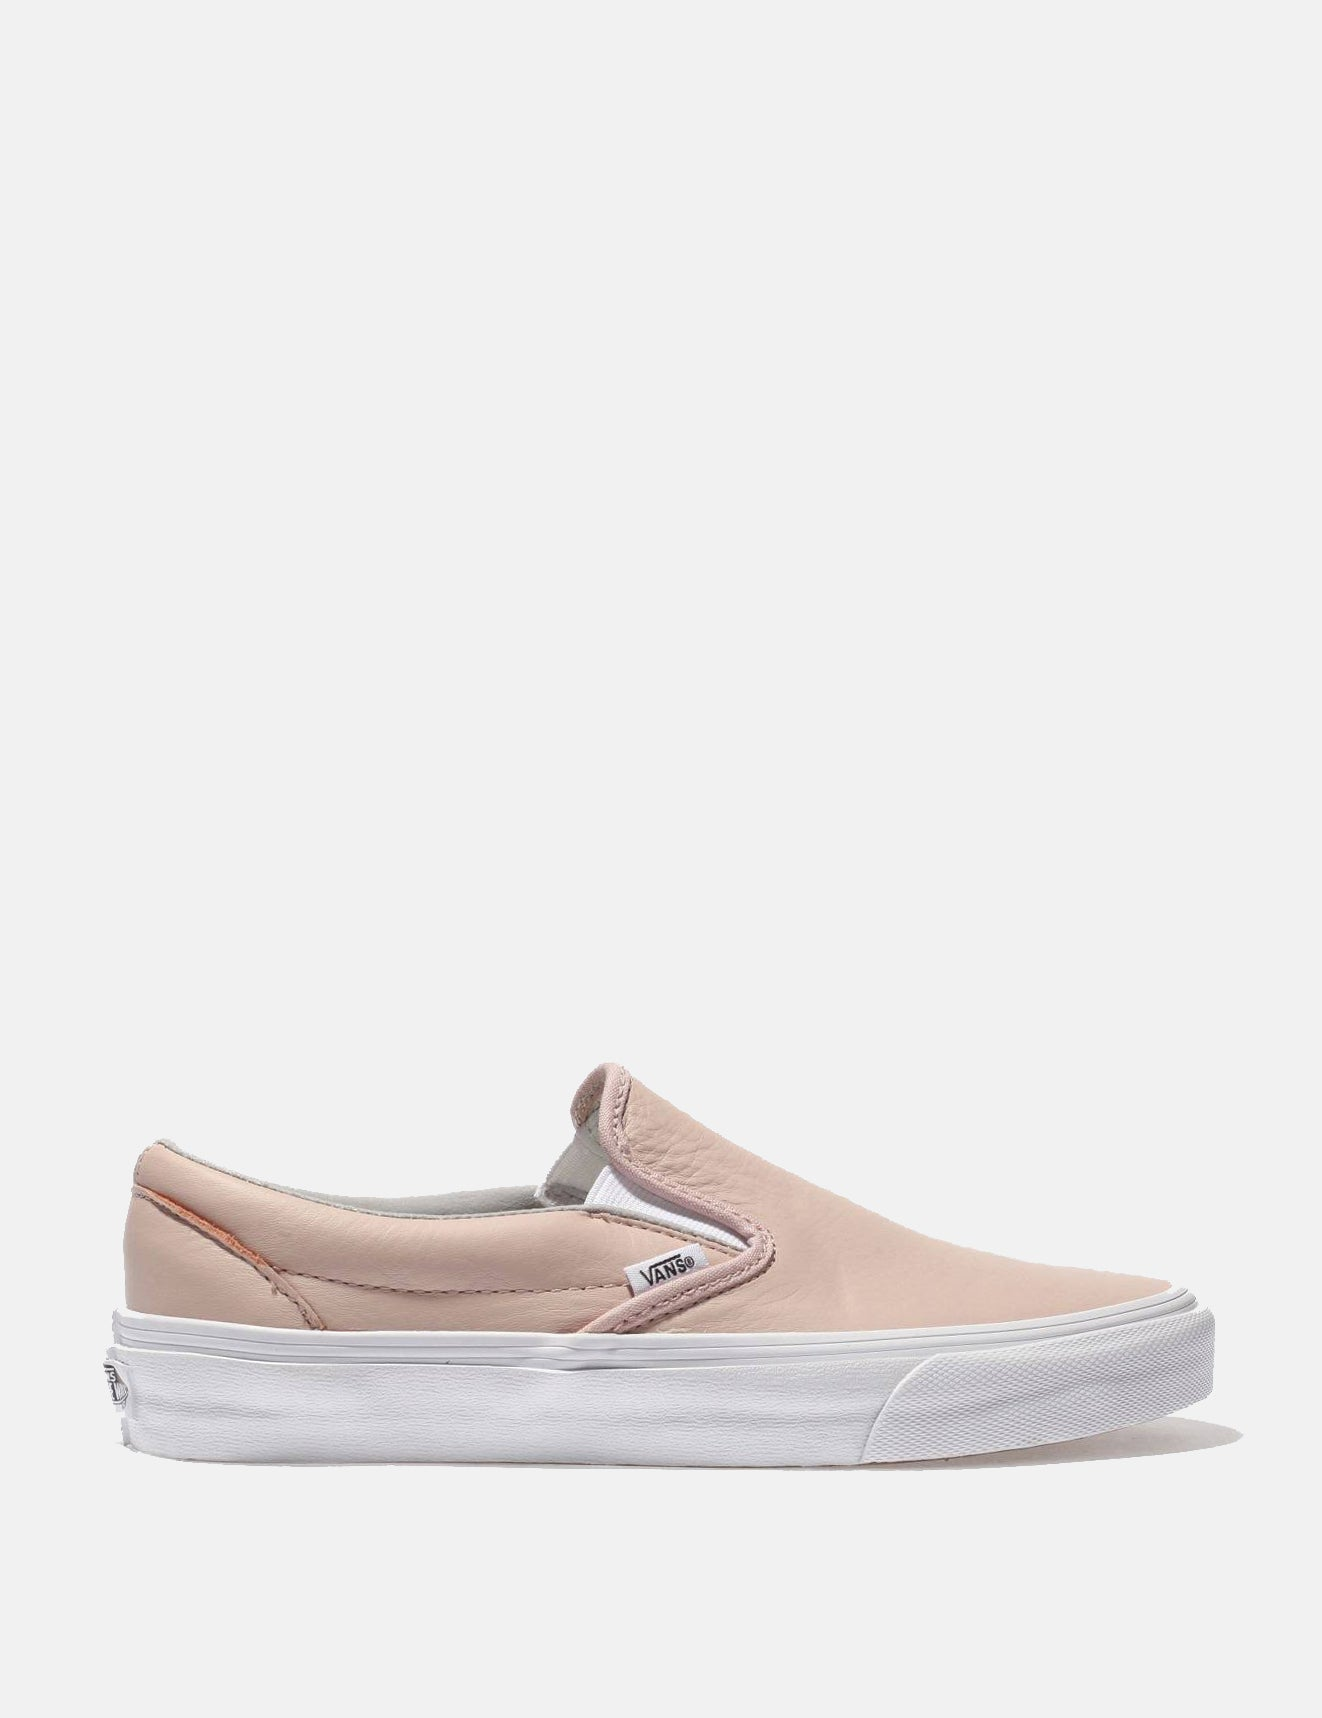 Vans Classic Slip-On (Leather) - Oxford/Evening Pink | URBAN EXCESS.